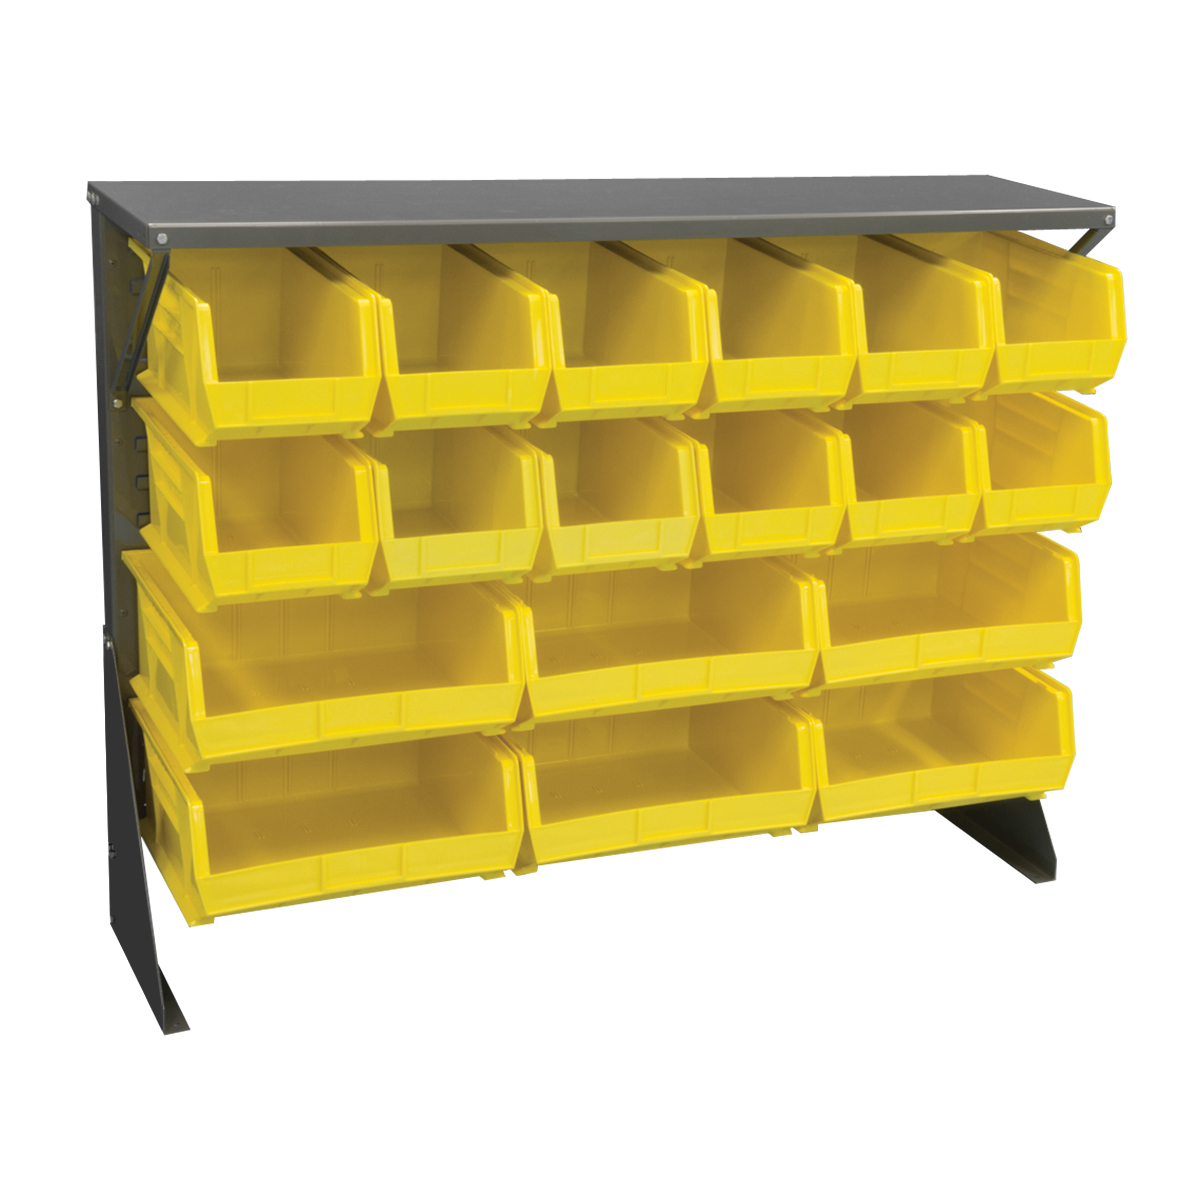 Item DISCONTINUED by Manufacturer.  Low Profile Floor Rack, 1-Sided, Shelf w/ 18 AkroBins, Gray/Yellow (30650GYASSTY).  This item sold in carton quantities of 1.